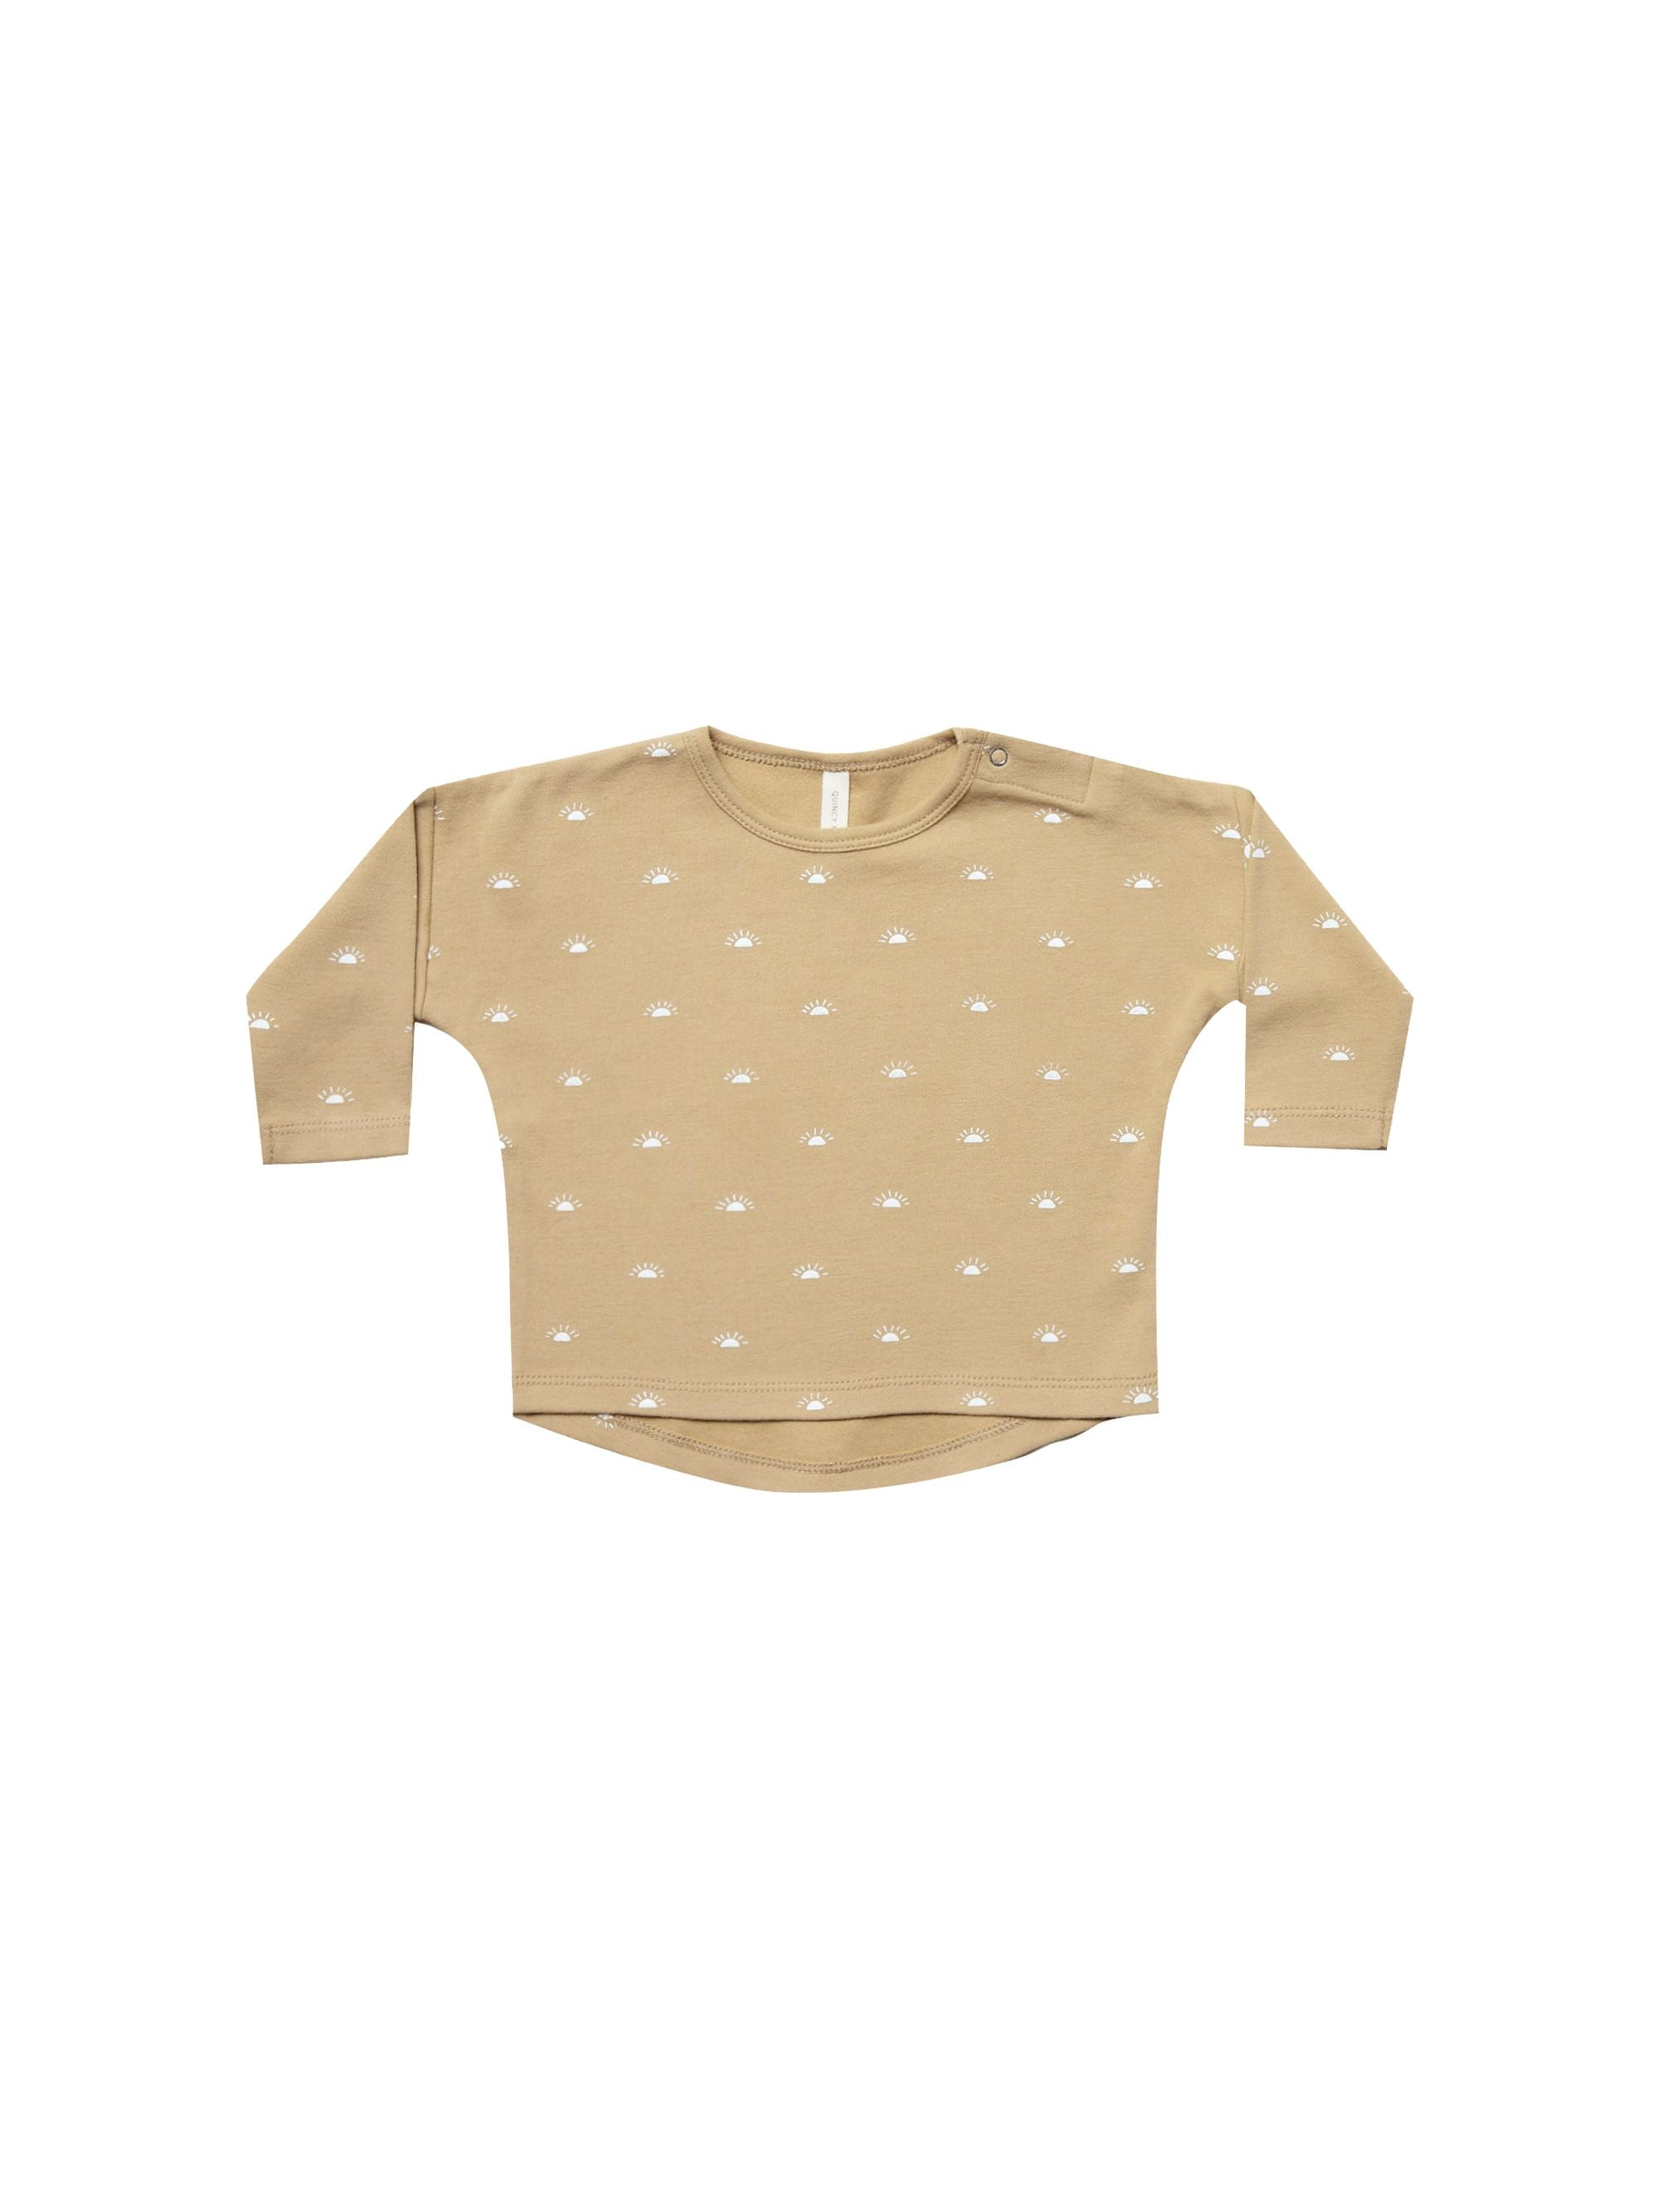 Quincy Mae Organic Longsleeve Baby Tee, Honey